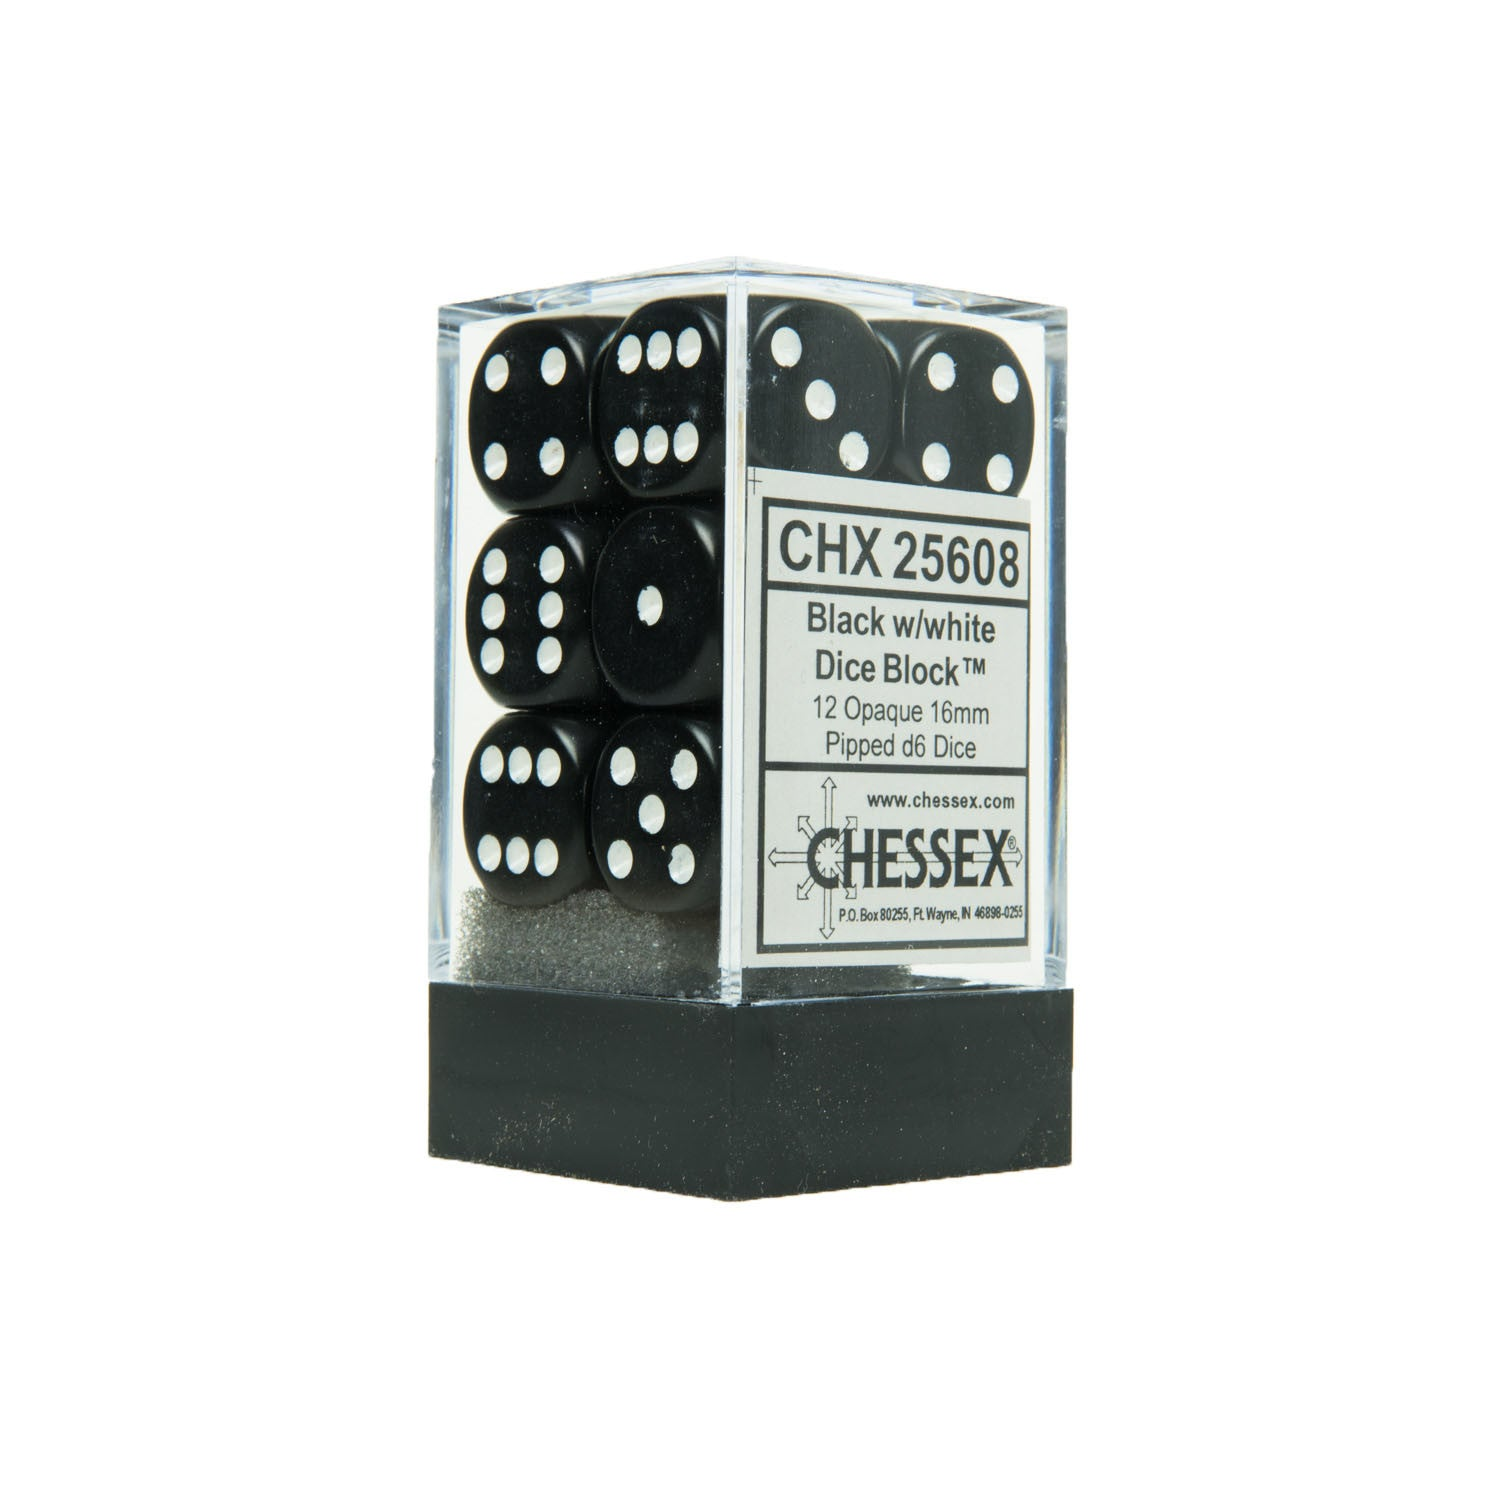 Chessex CHX25608 12 Black w/ white Opaque 16mm d6 Dice